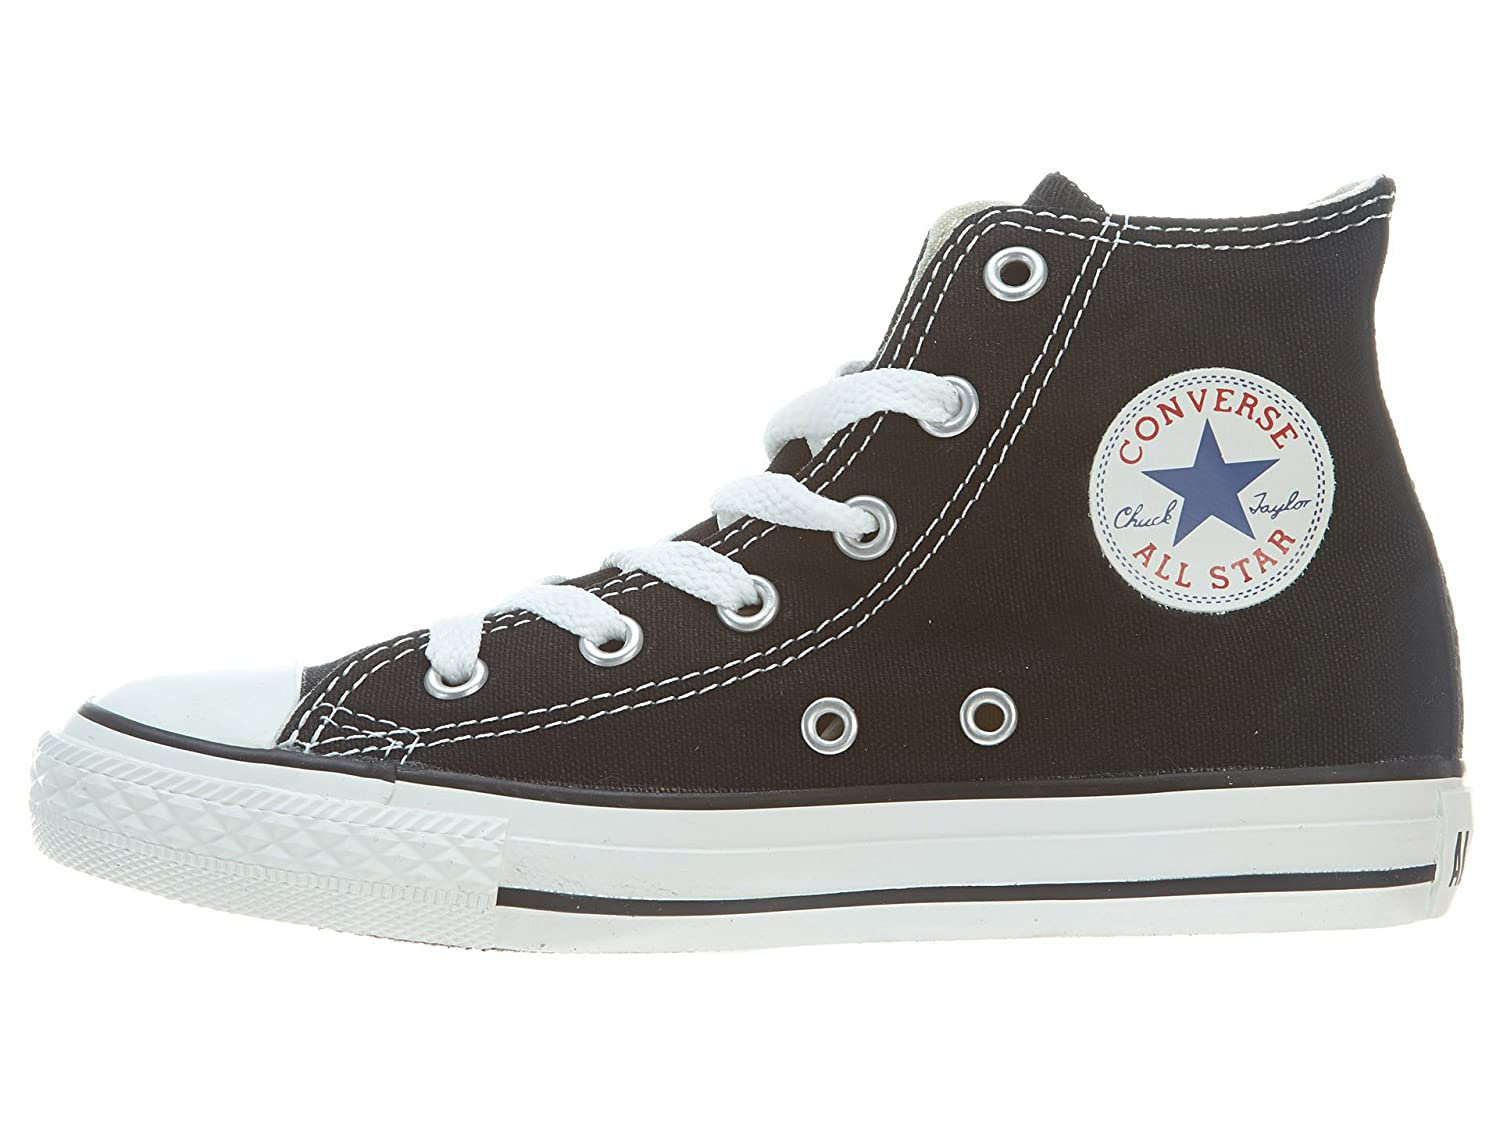 Converse Chuck Taylor All Star Star Star Toddler High Top, Scarpe per bambini | Stile elegante